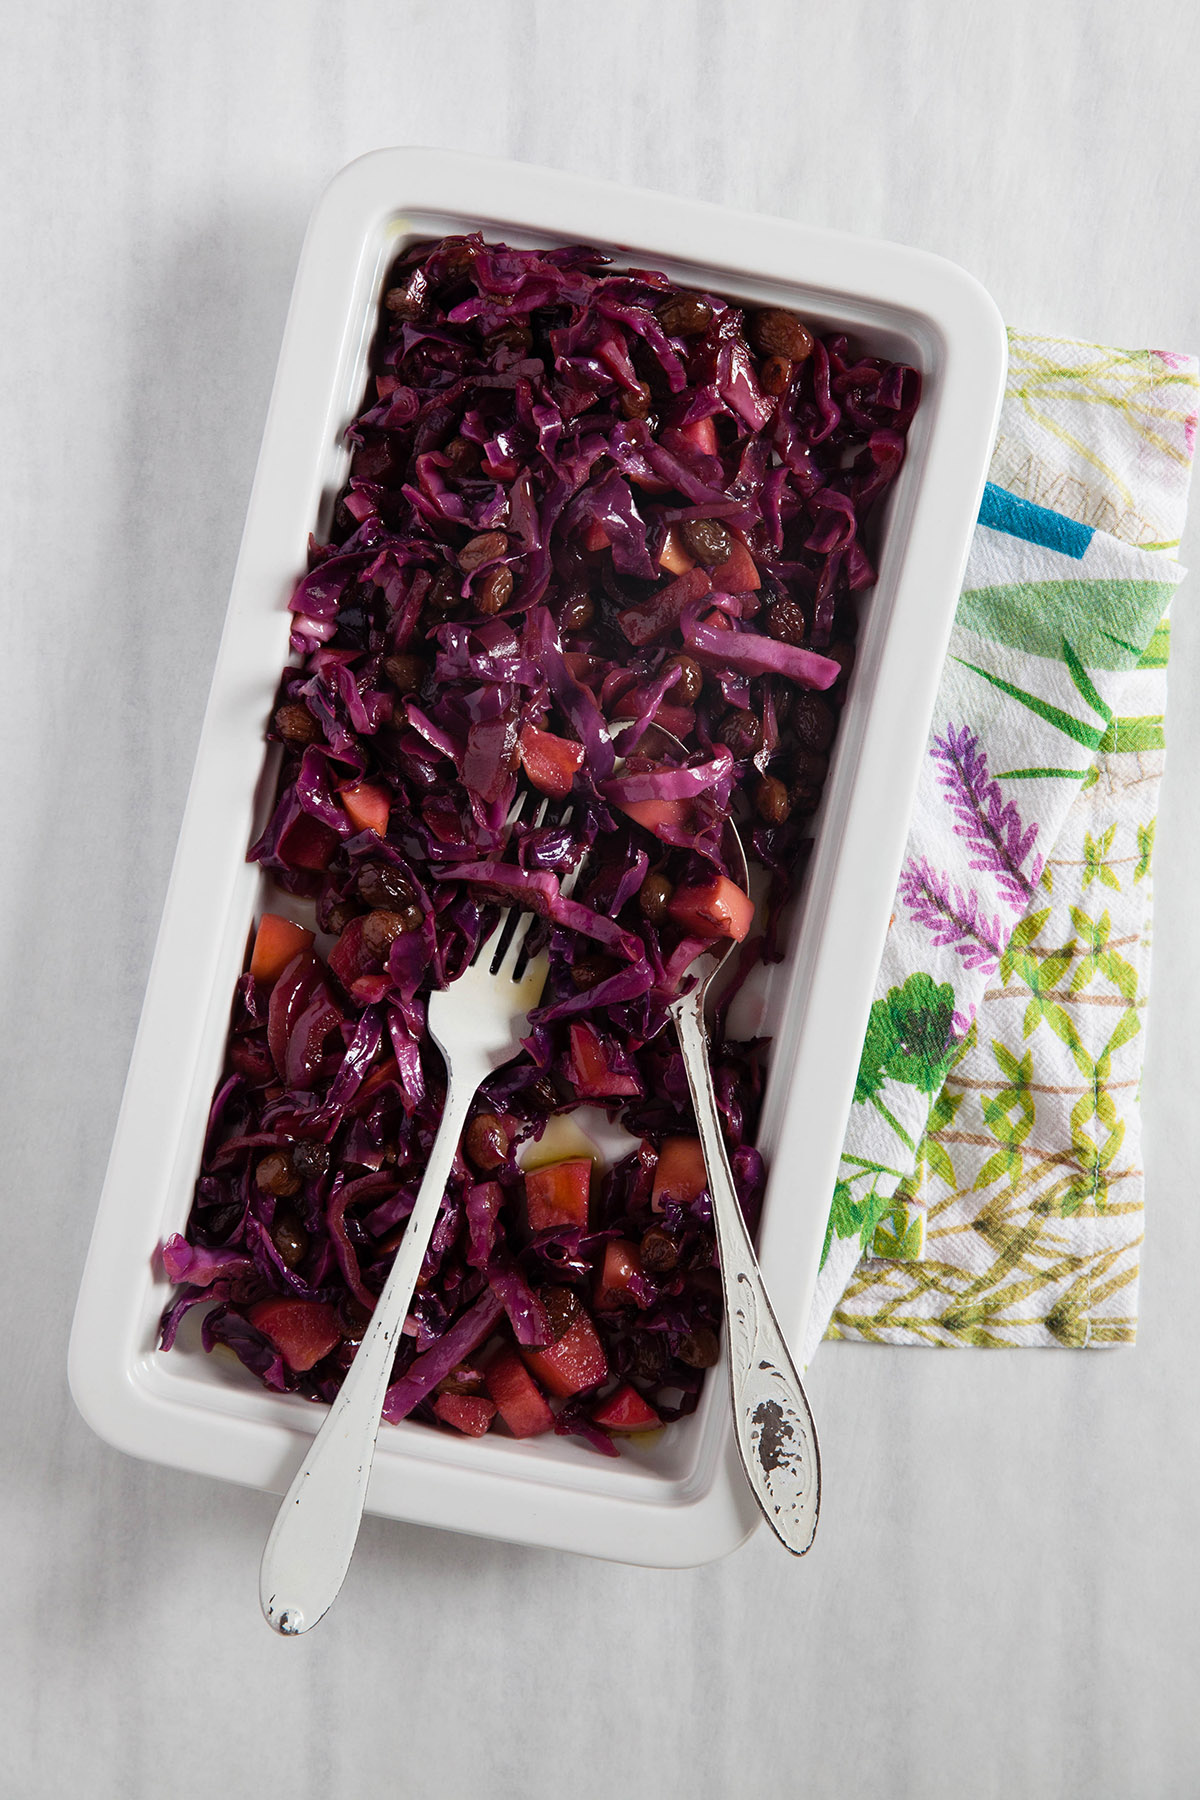 Colavita by Mike Colameco: Braised Red Cabbage